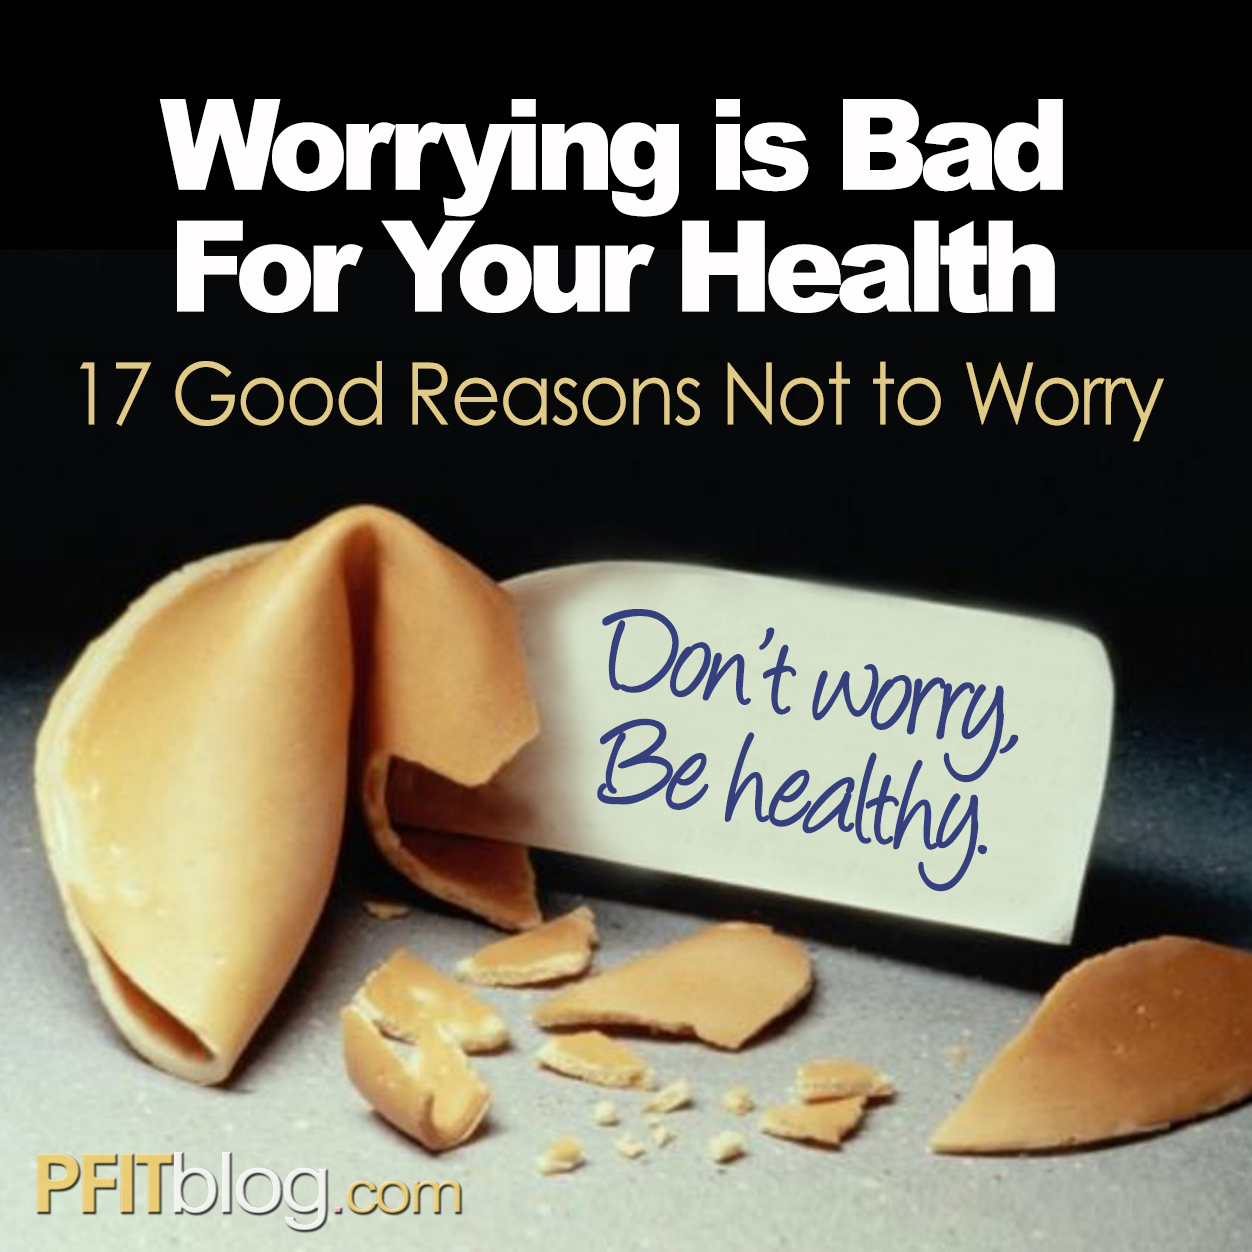 Are you worried about your health and nutrition? 87